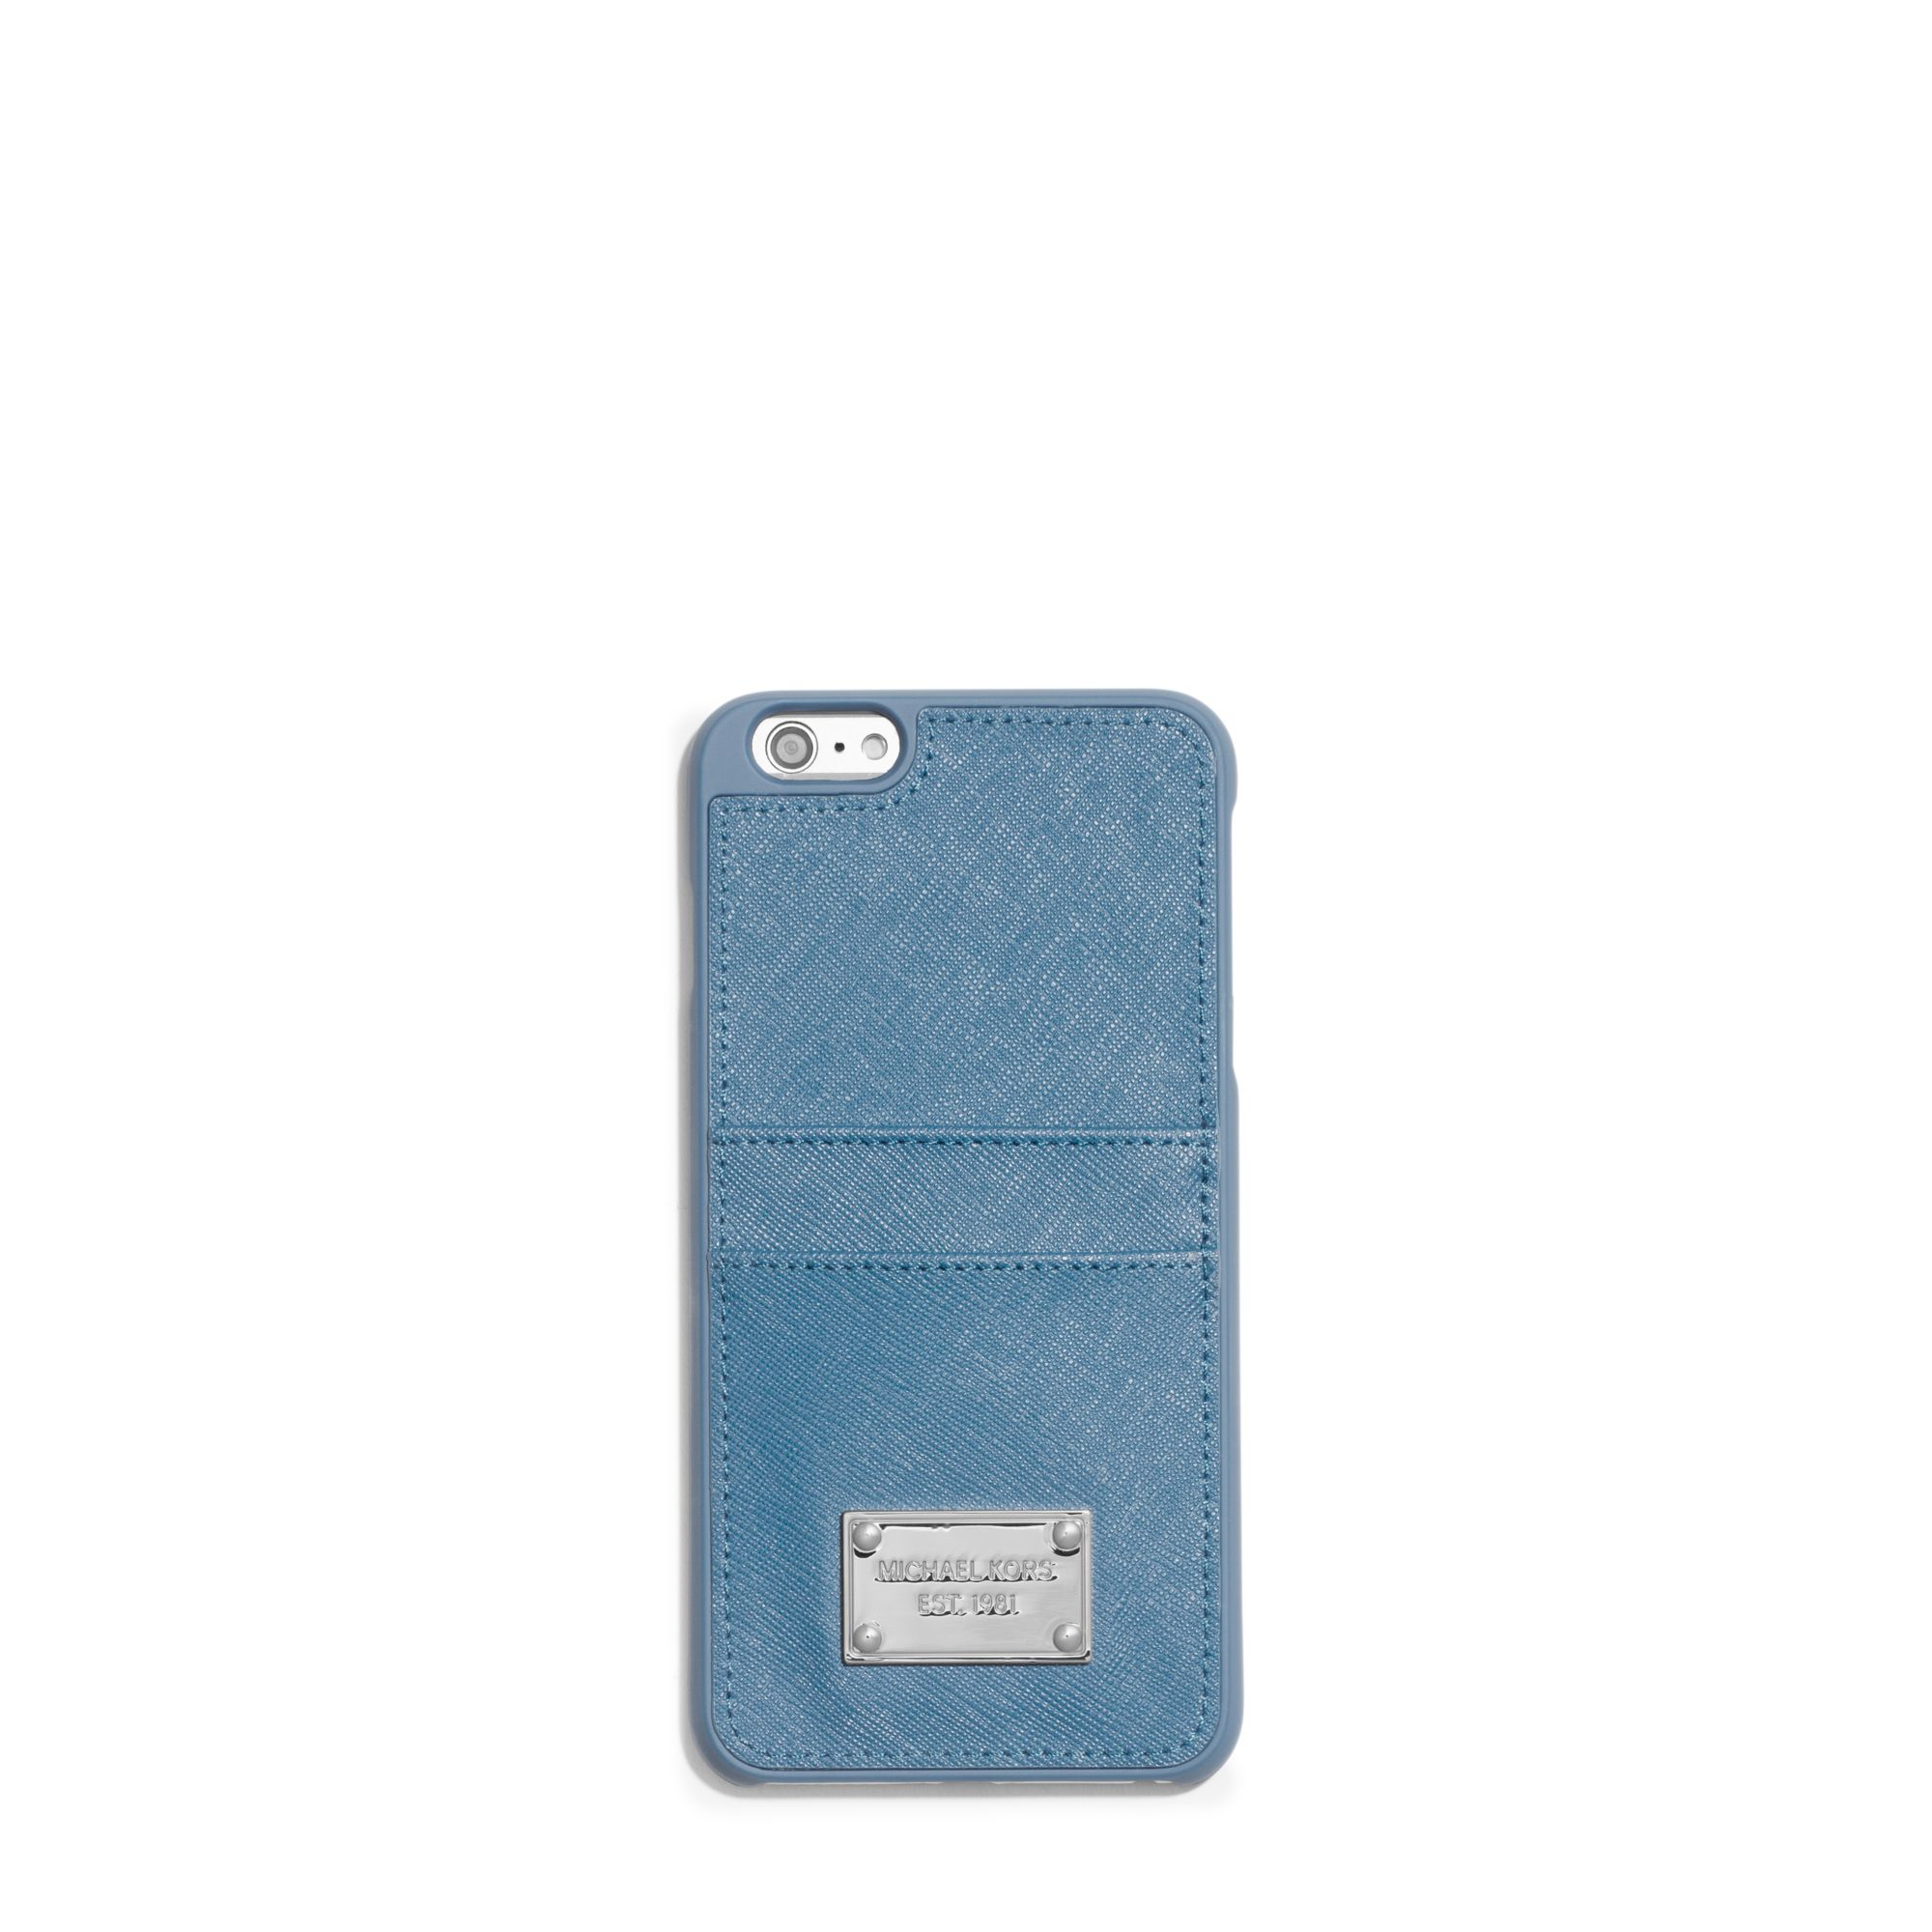 Michael kors Saffiano Leather Pocket Smartphone Case in Blue : Lyst